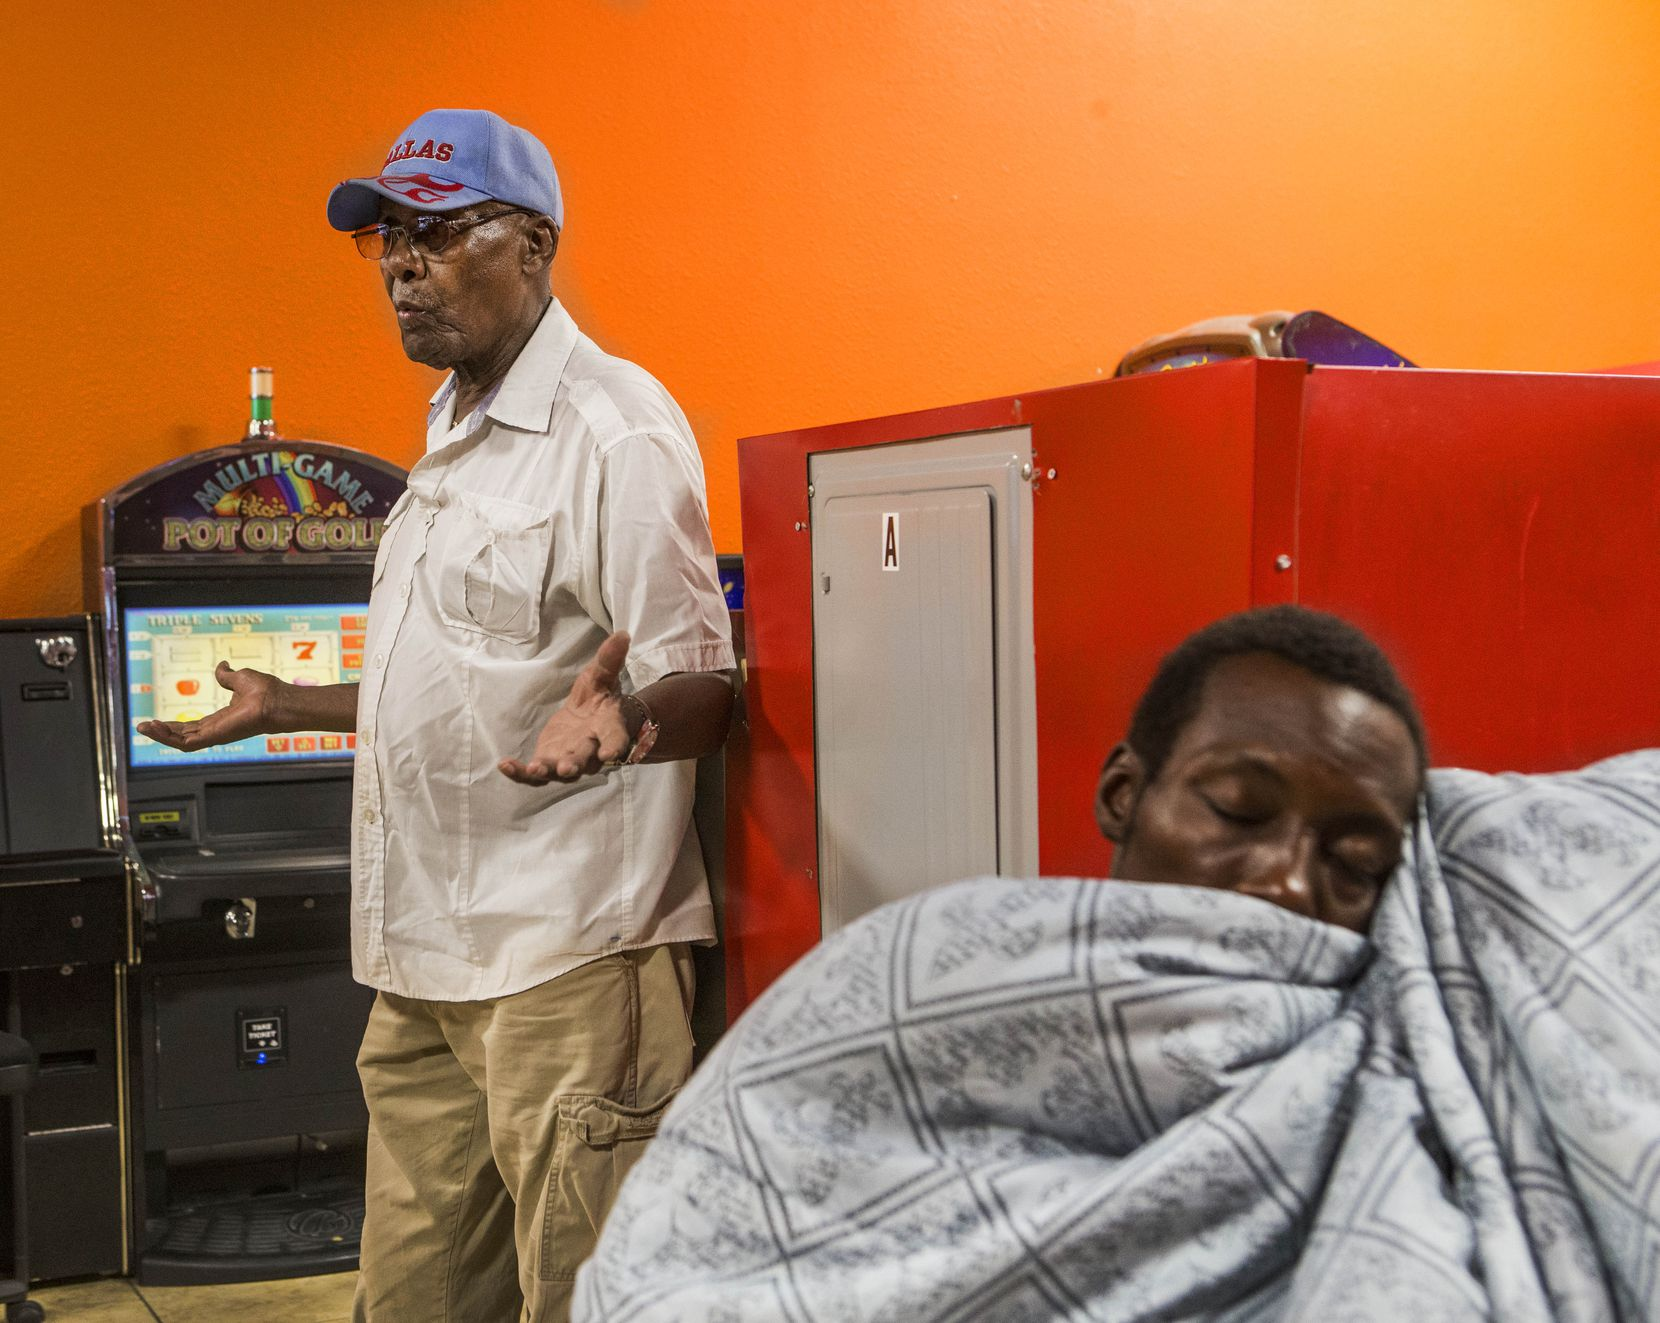 Longtime Dallas resident Elijah Hawkins, left, talks about the news regarding former Dallas Mayor Pro Tem Dwaine Caraway as Tae Shelton, of Dallas, takes a nap at Amigo Wash & Dry in Dallas on Aug. 9, 2018. Hawkins said he was disappointed to hear about Caraway, who will plead guilty to federal corruption charges. He knew him to be approachable and invested in the community.